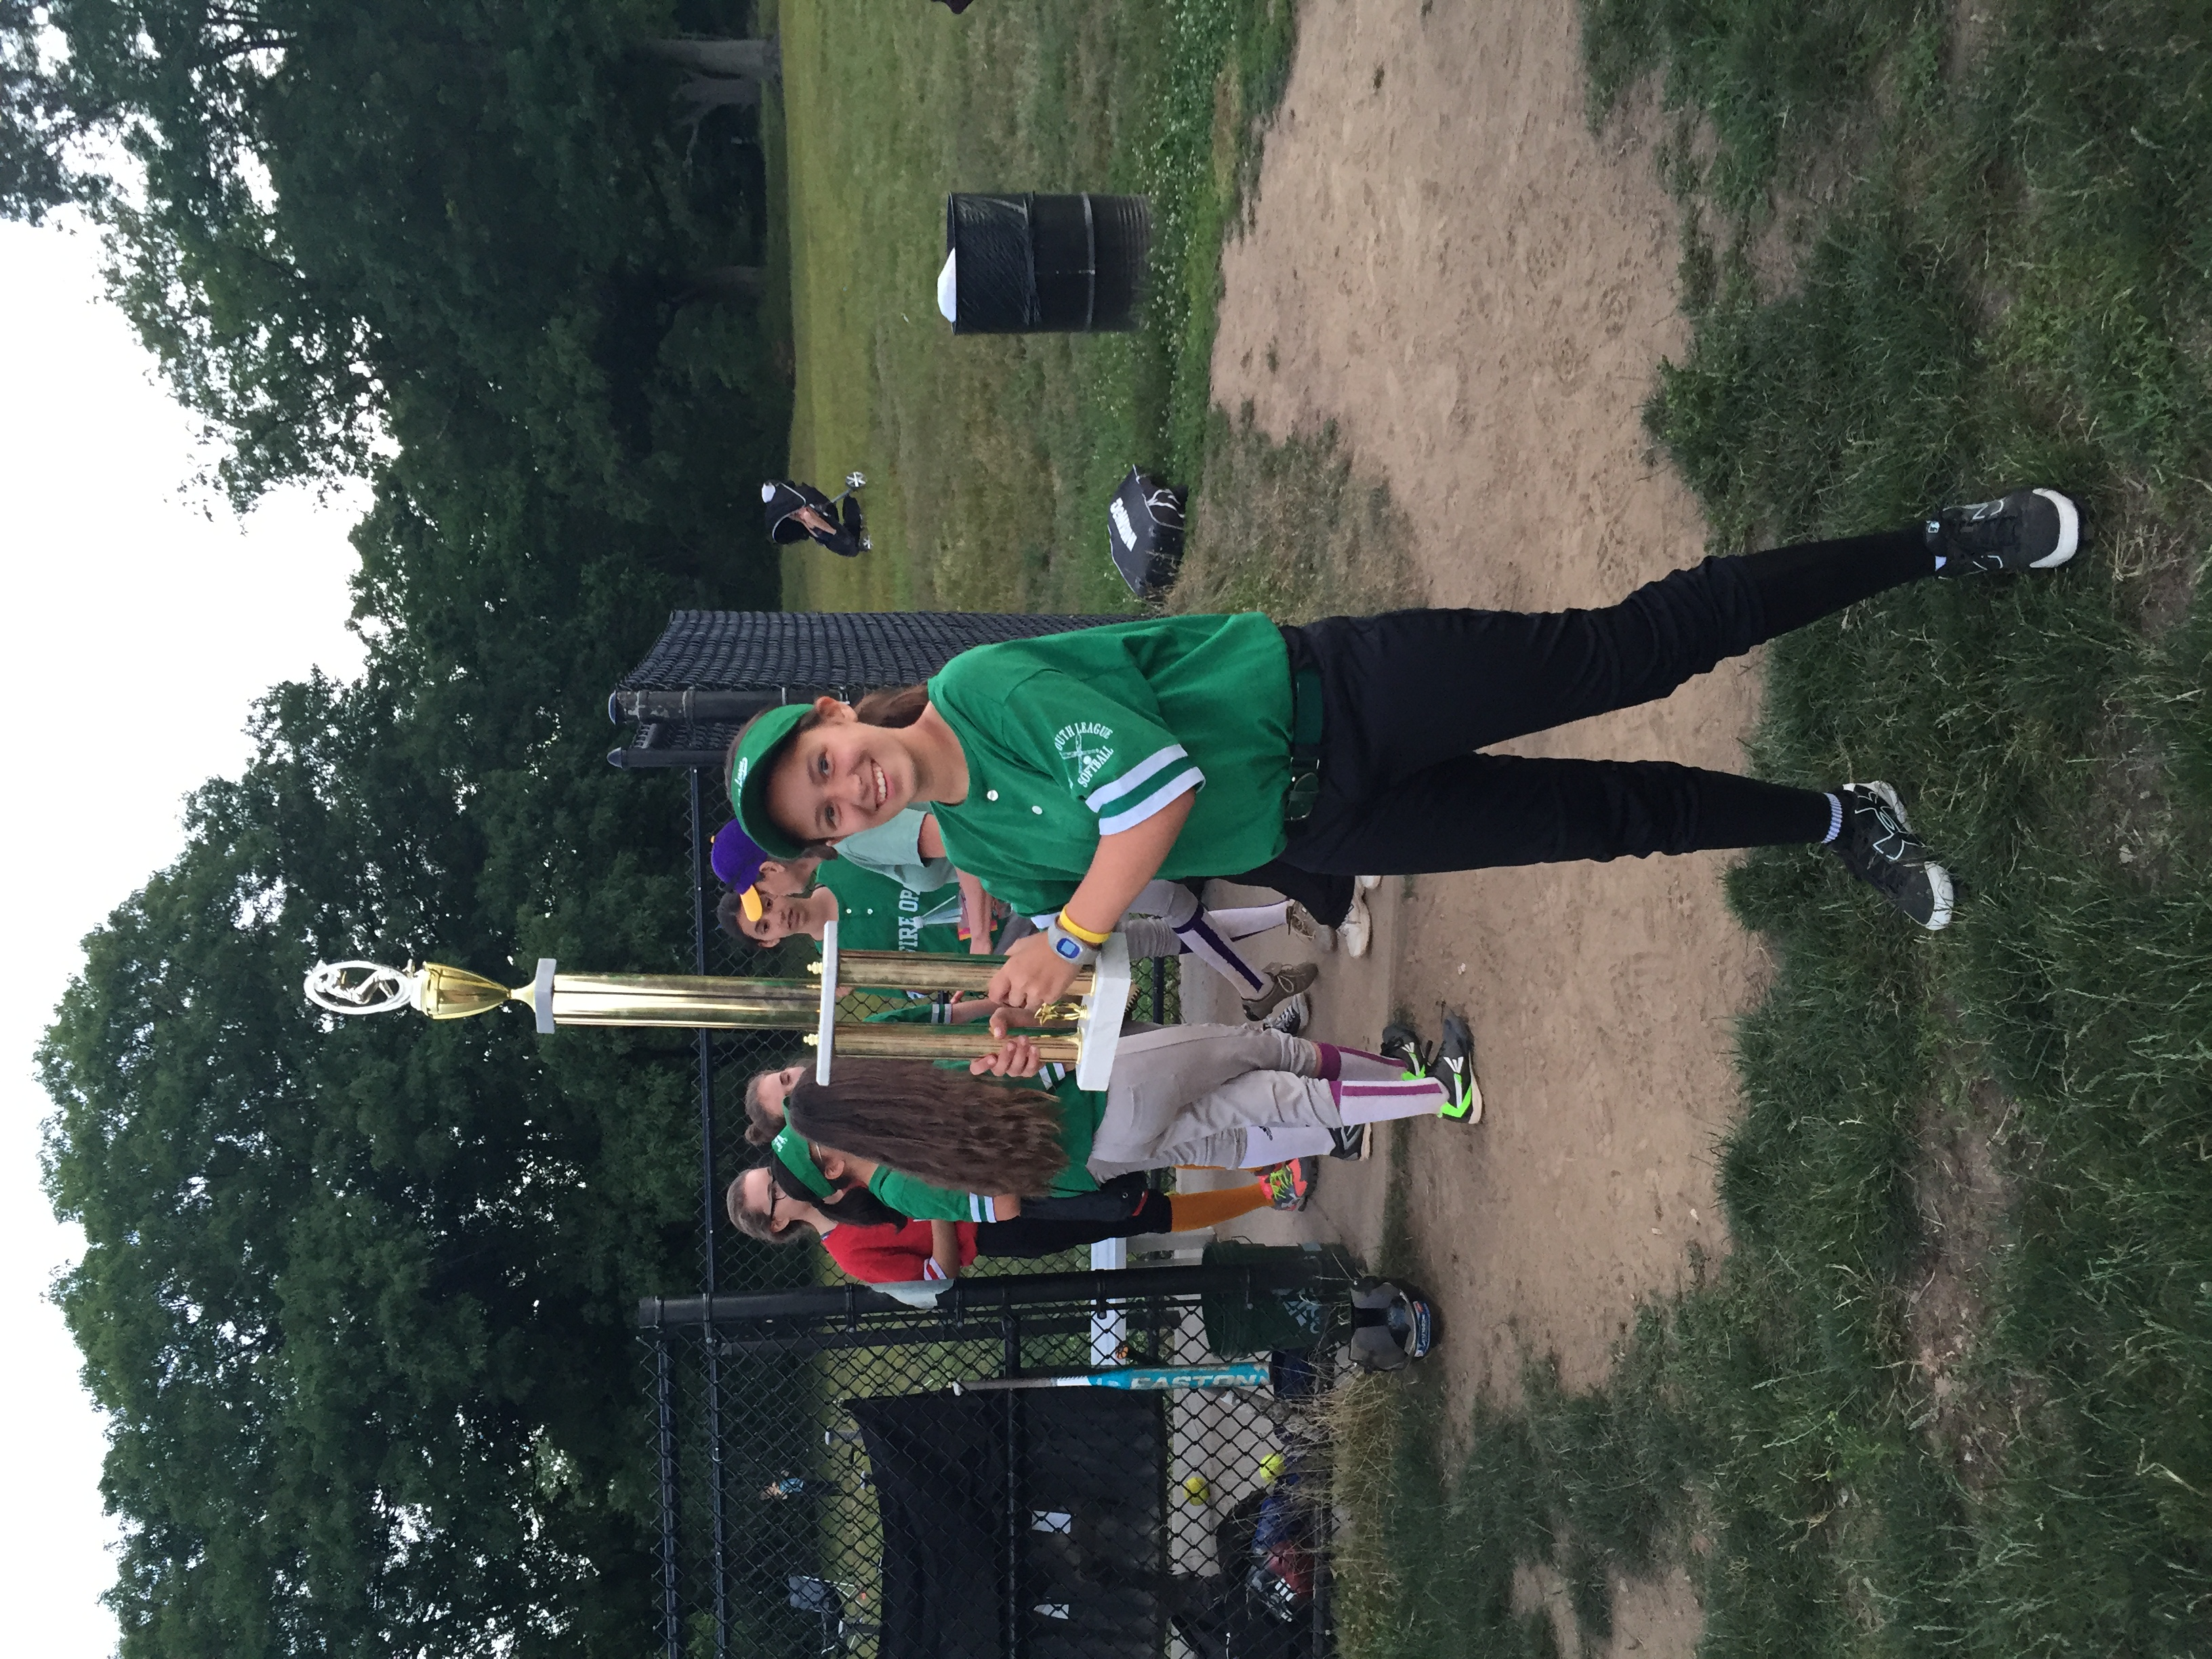 The author holds a large softball trophy. Photo courtesy of the author.